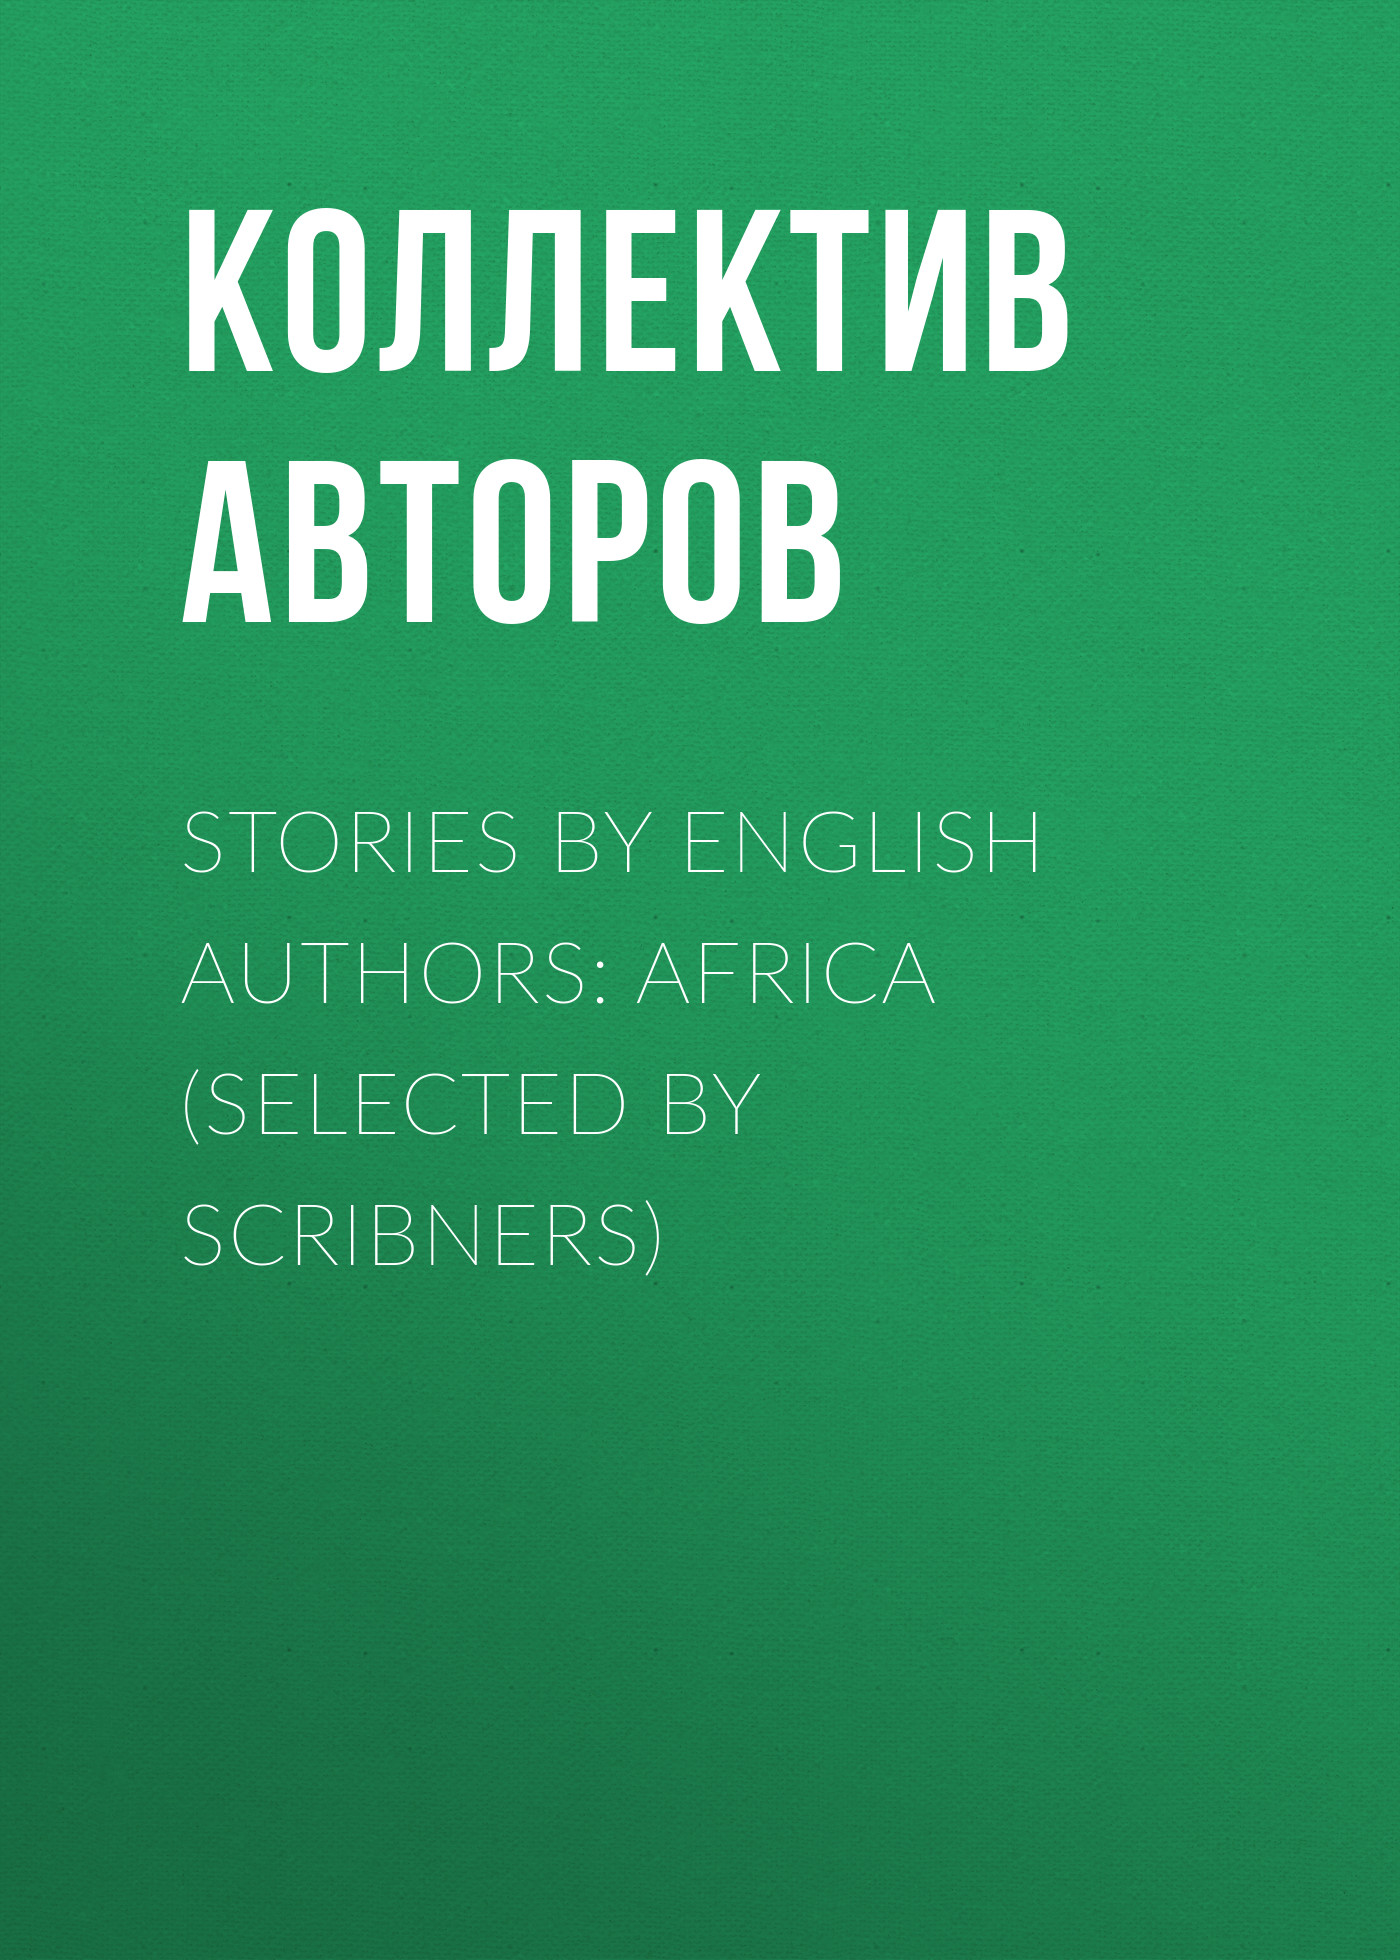 Коллектив авторов Stories by English Authors: Africa (Selected by Scribners)